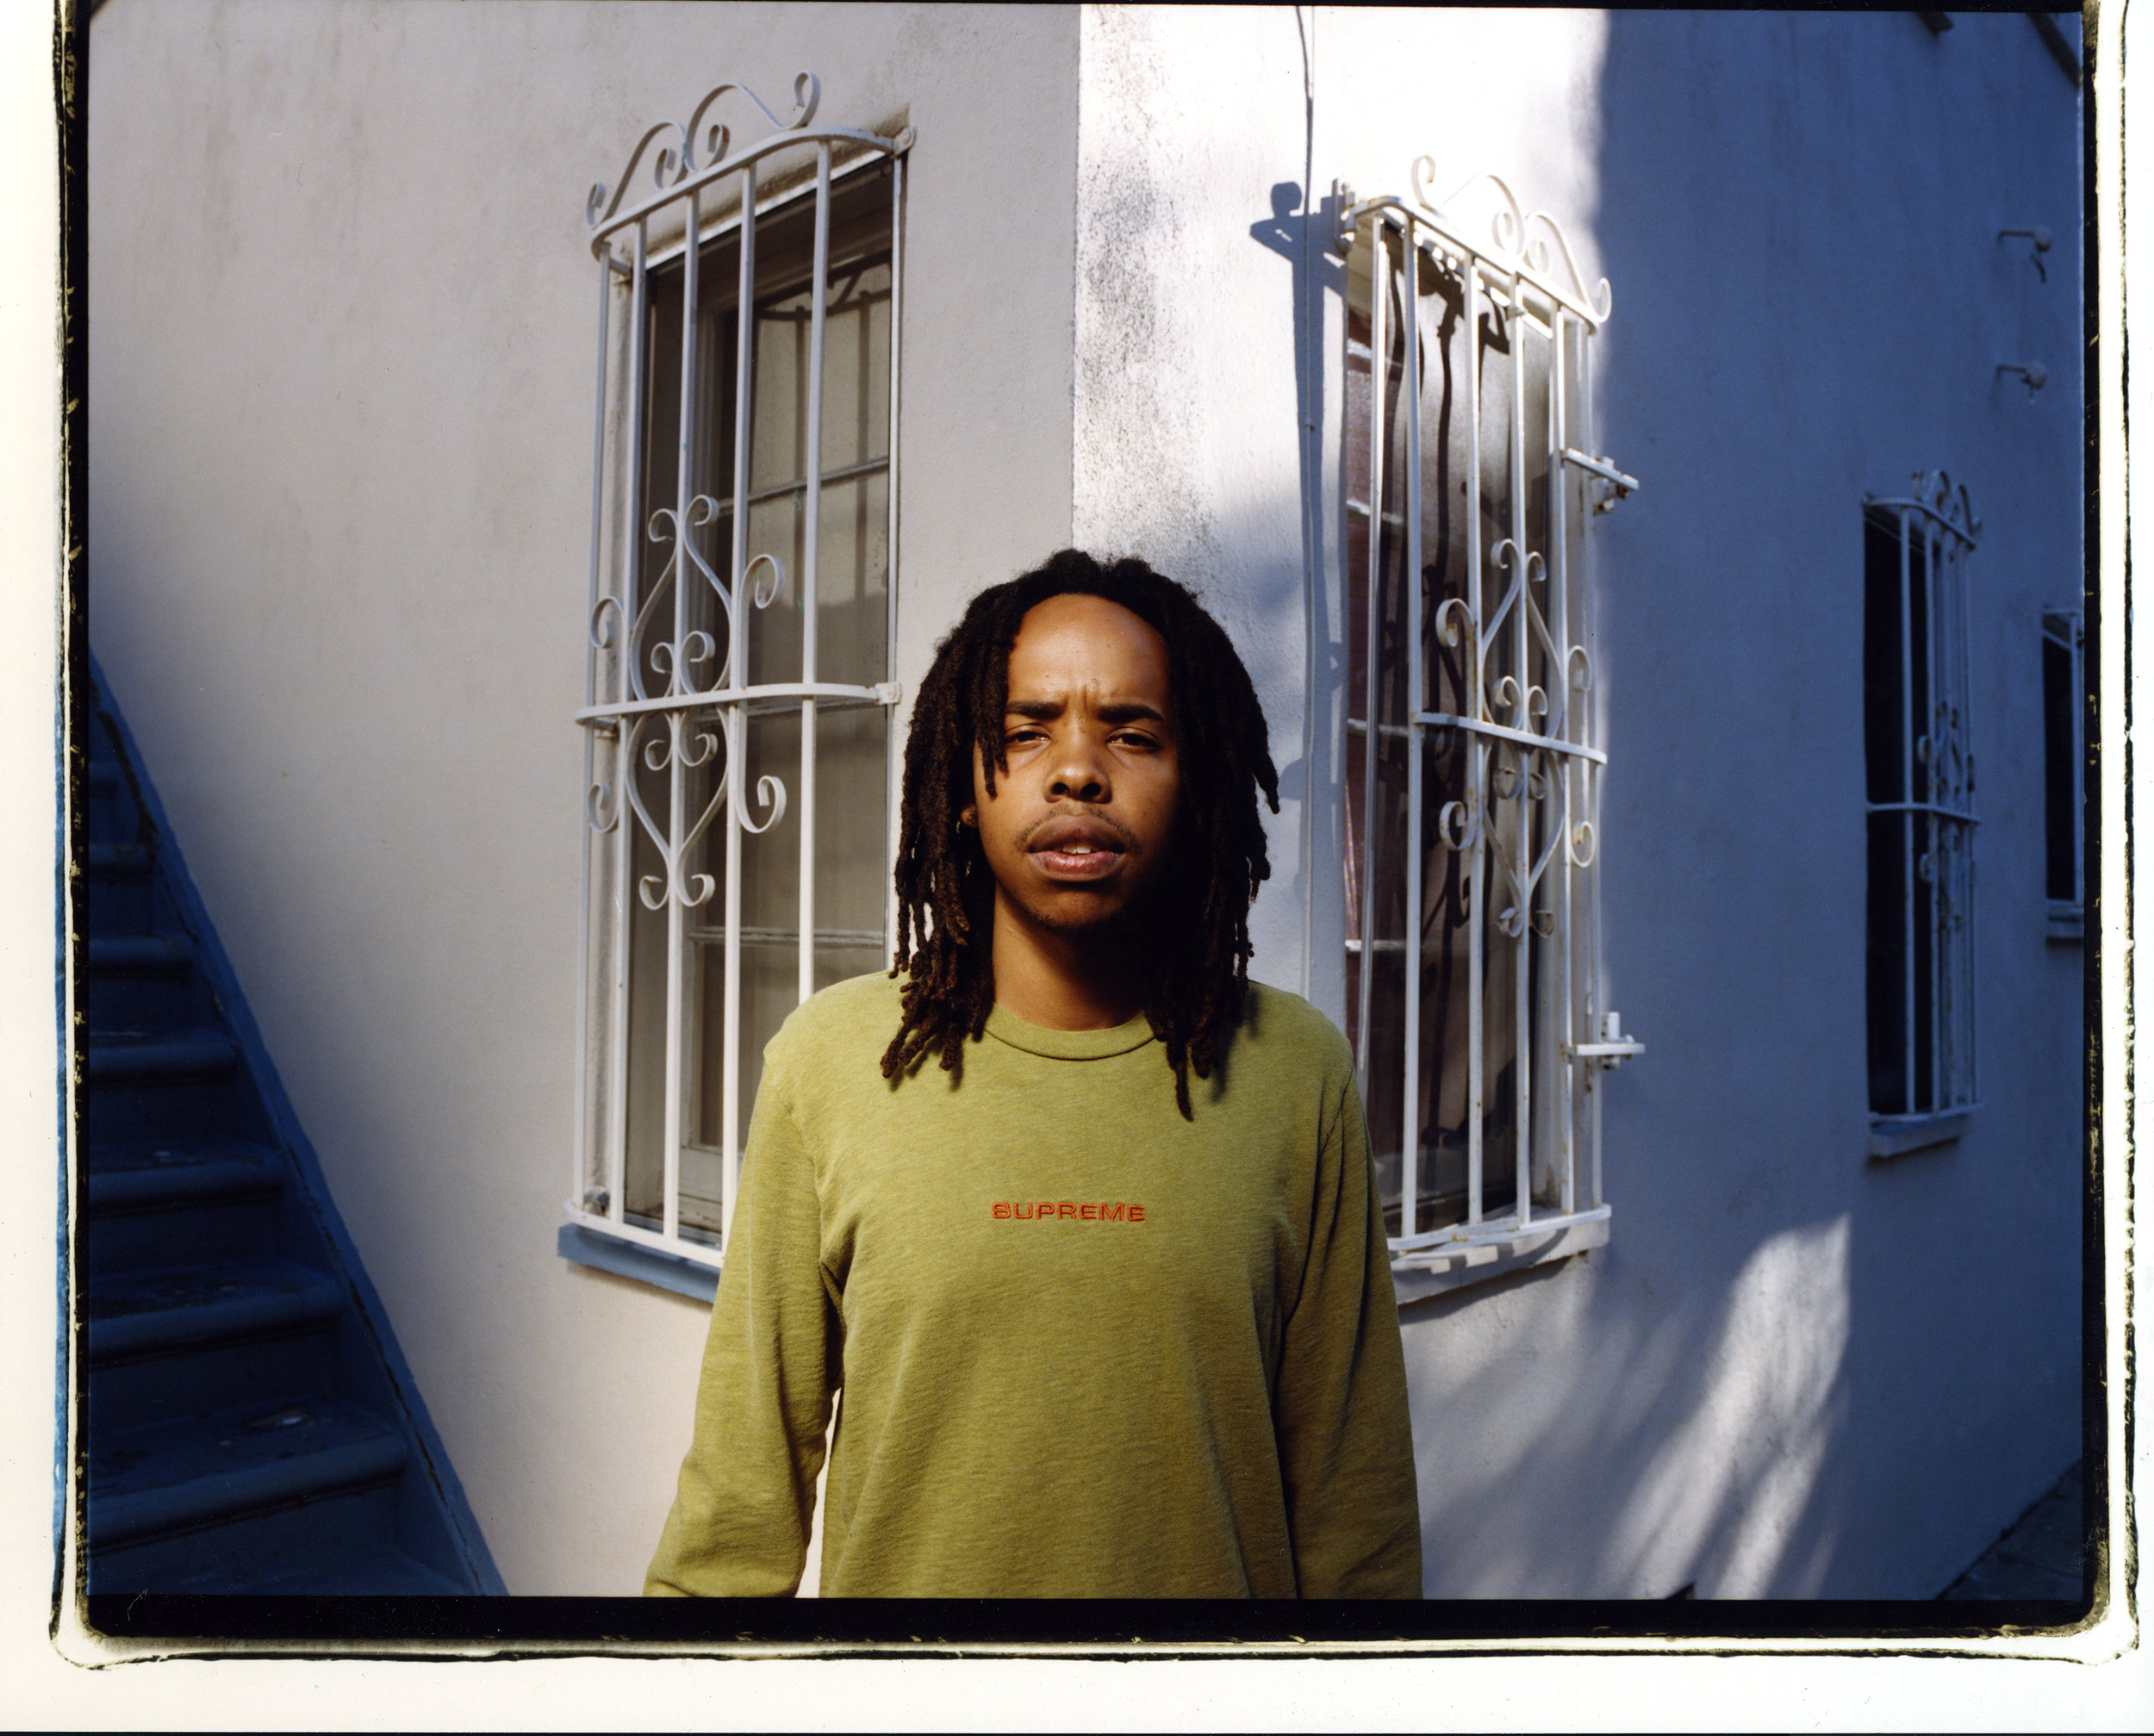 Earl Sweatshirt for Pitchfork